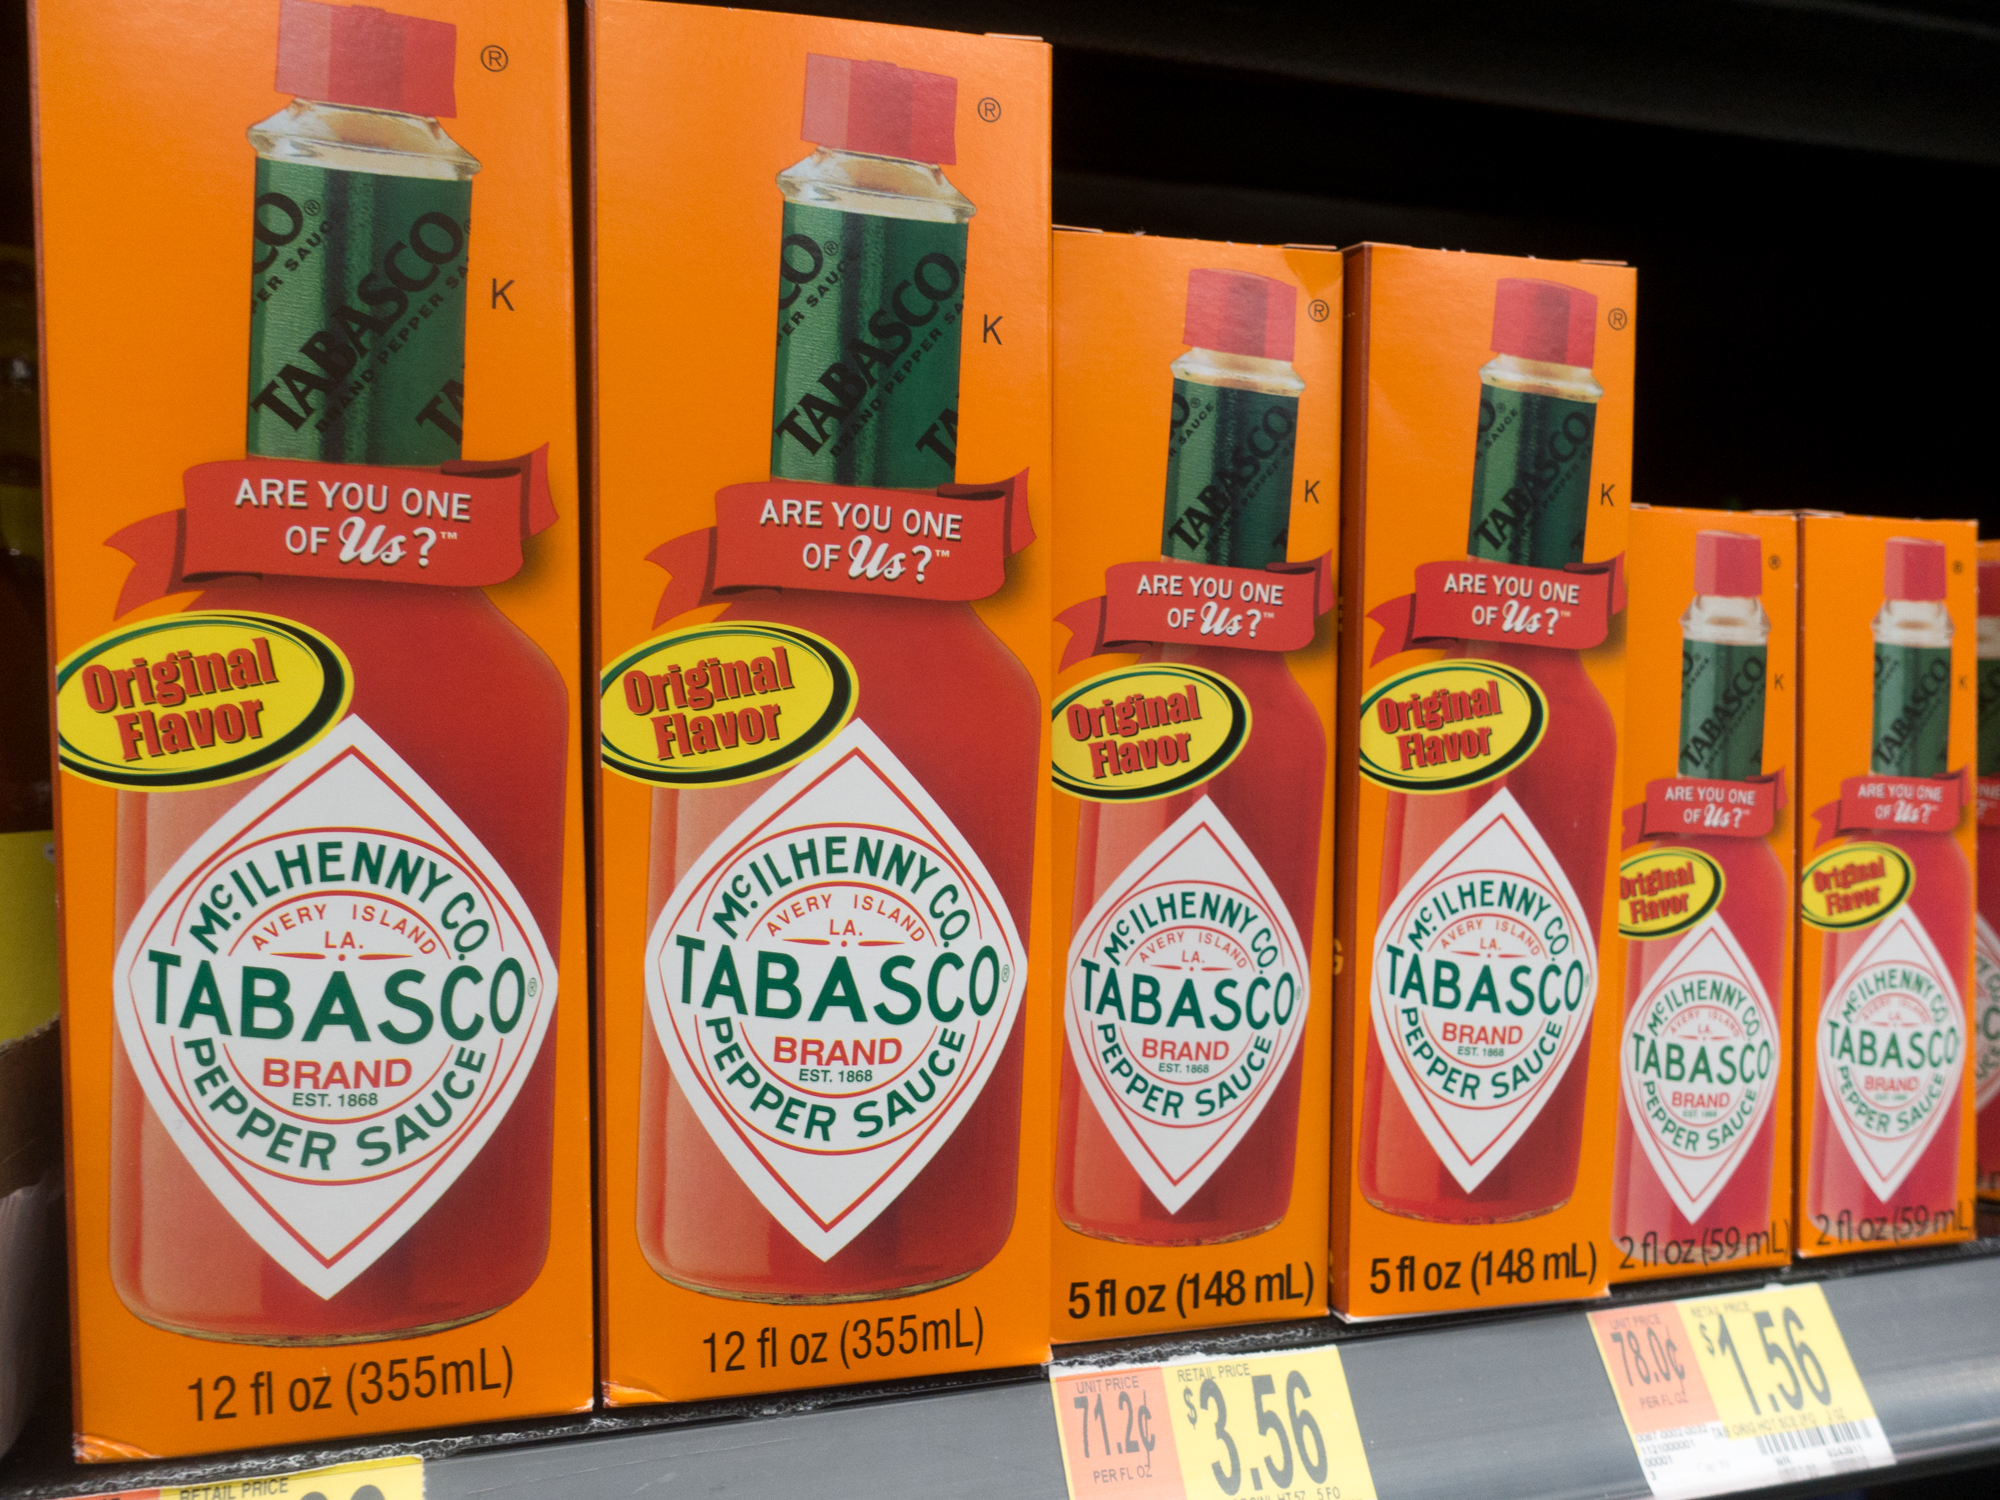 TABASCO® brand Original Red Sauce adds an extra layer of flavor to this creamy dip. The hot sauce adds a touch of heat, which balances out the dip. The hot sauce enhances the dip without without overpowering the dip.